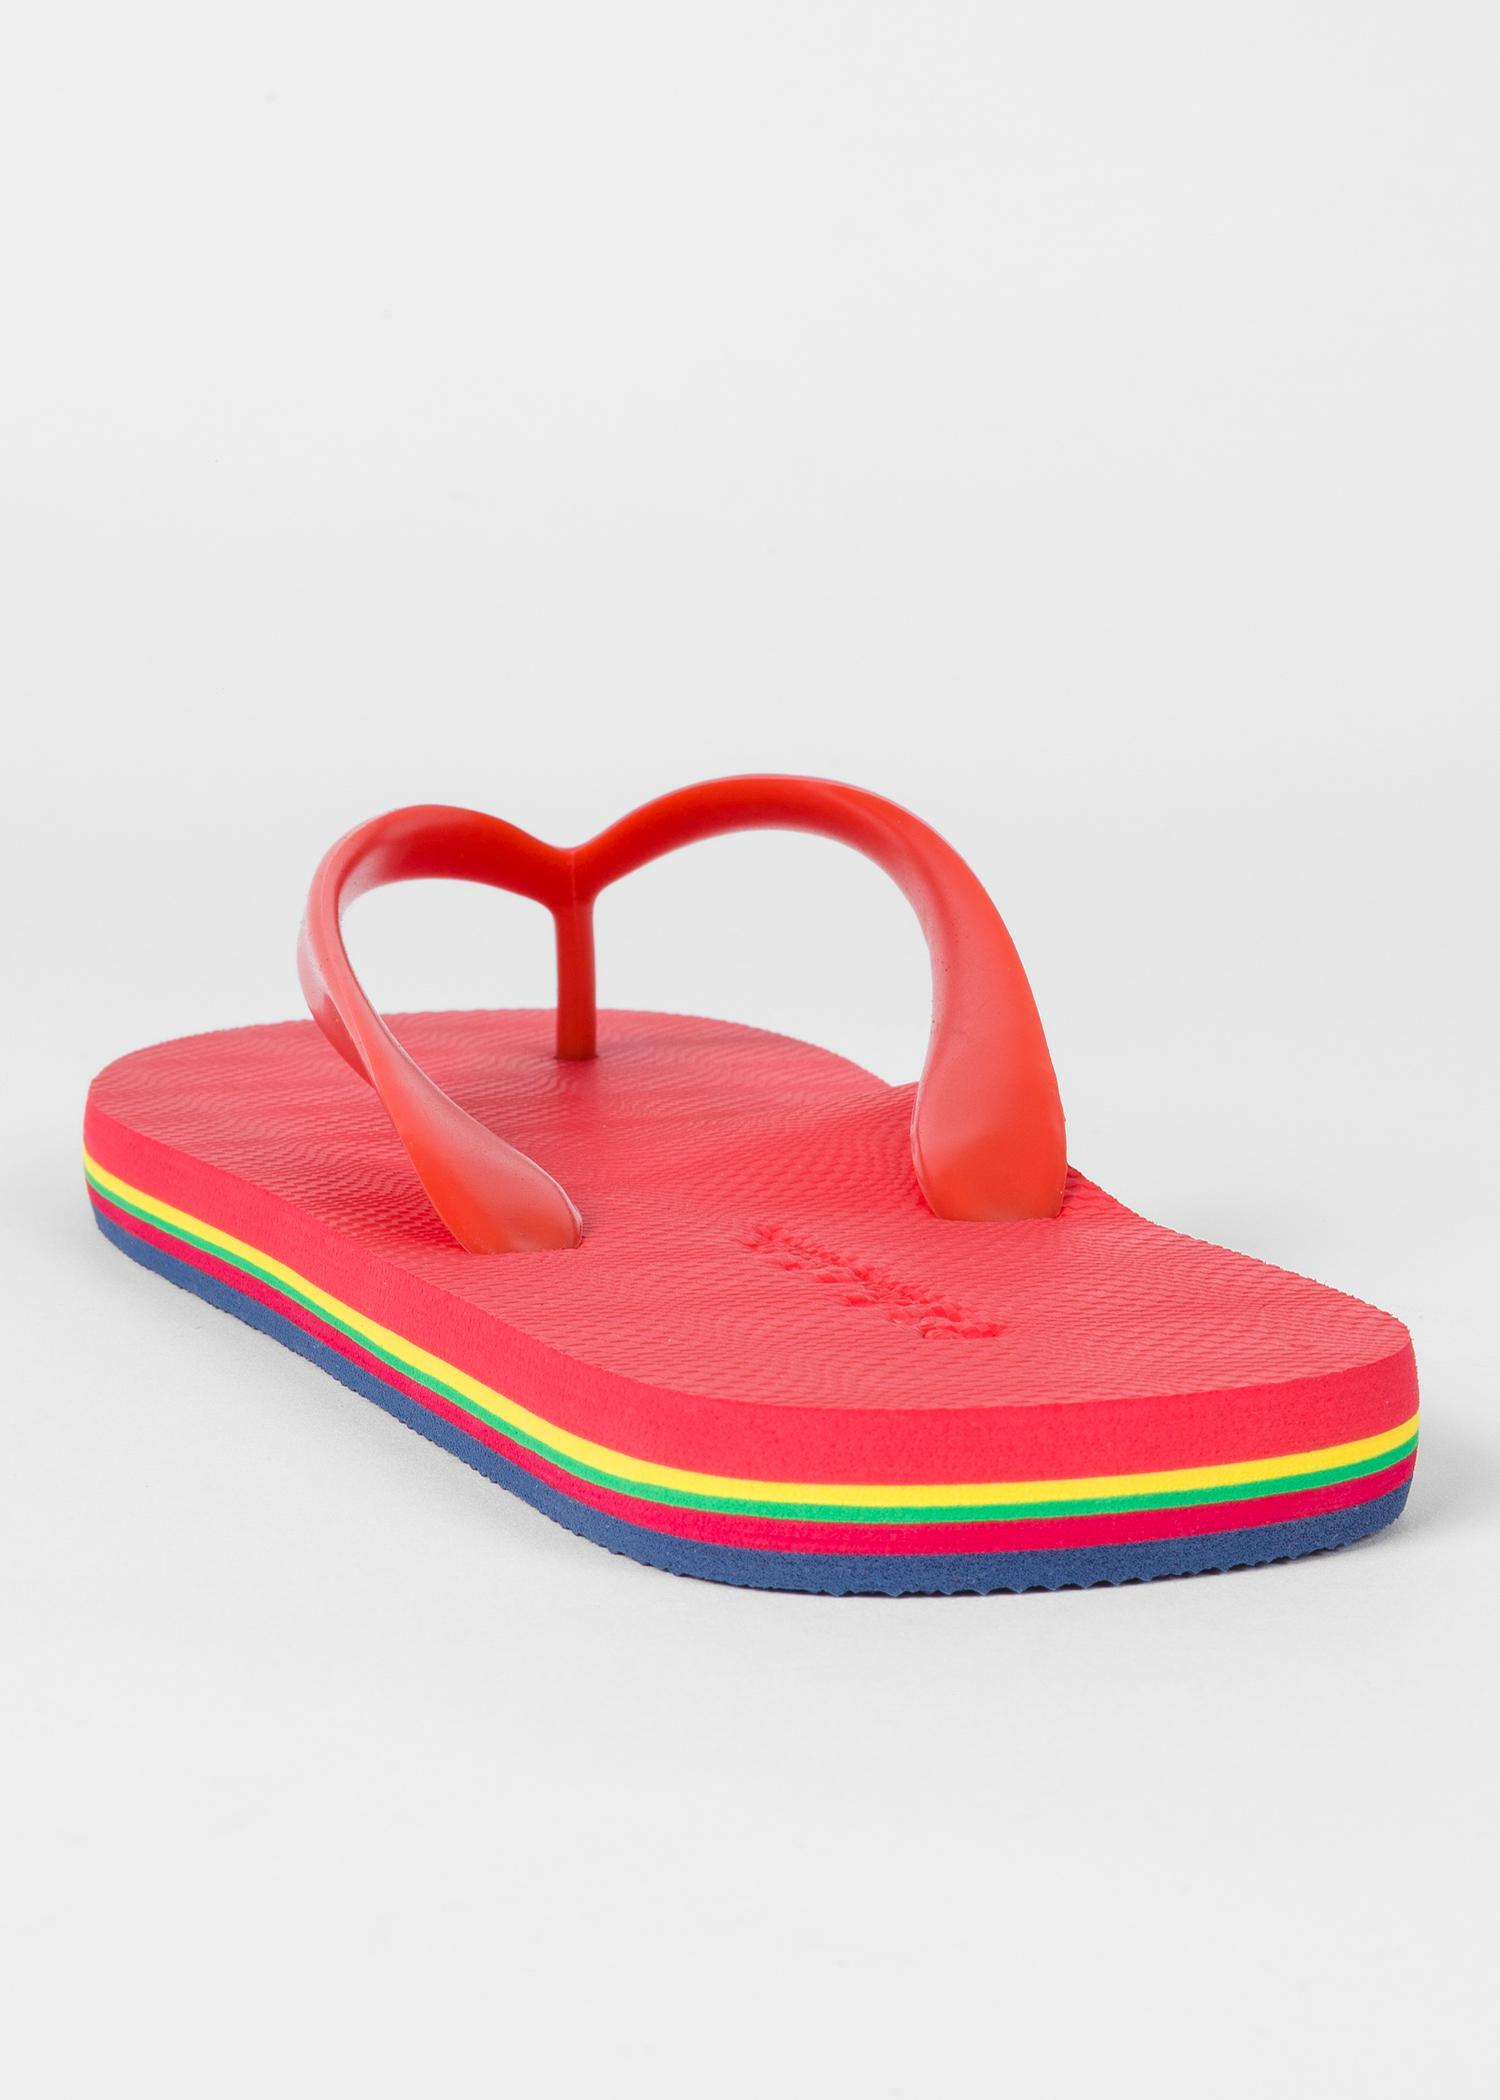 Paul Smith Rubber Red Dale Flip Flops With Multi -1533